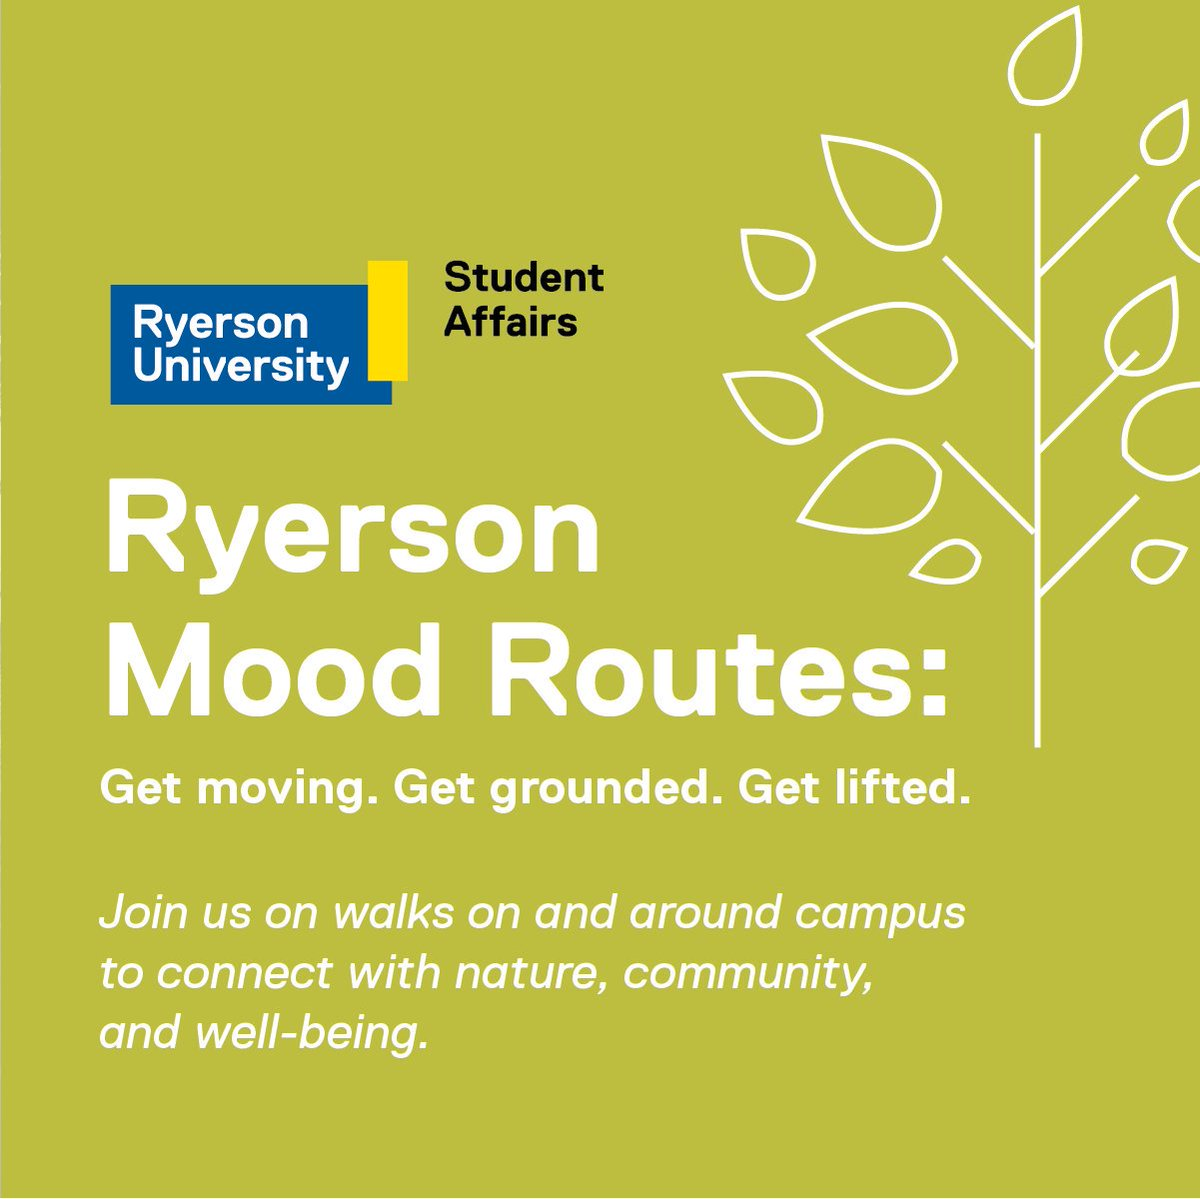 Ryerson University On Twitter Exams Essays Assignments De  Ryerson University On Twitter Exams Essays Assignments Destress And  Change The Colour On Your Mood Ring With Ryerson Moodroutes